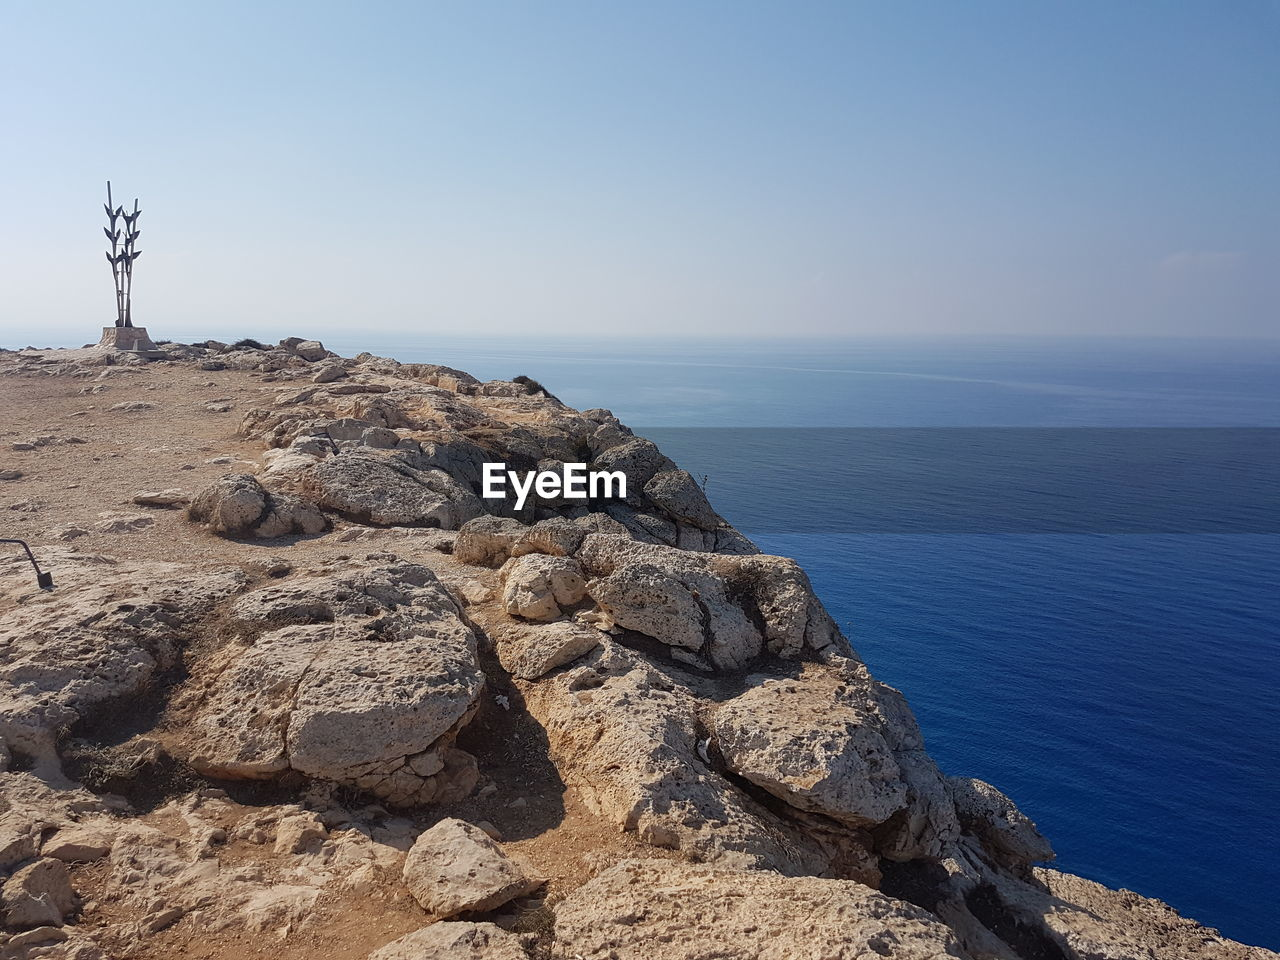 sea, horizon over water, nature, tranquil scene, water, beauty in nature, scenics, tranquility, rock - object, outdoors, day, clear sky, sky, no people, beach